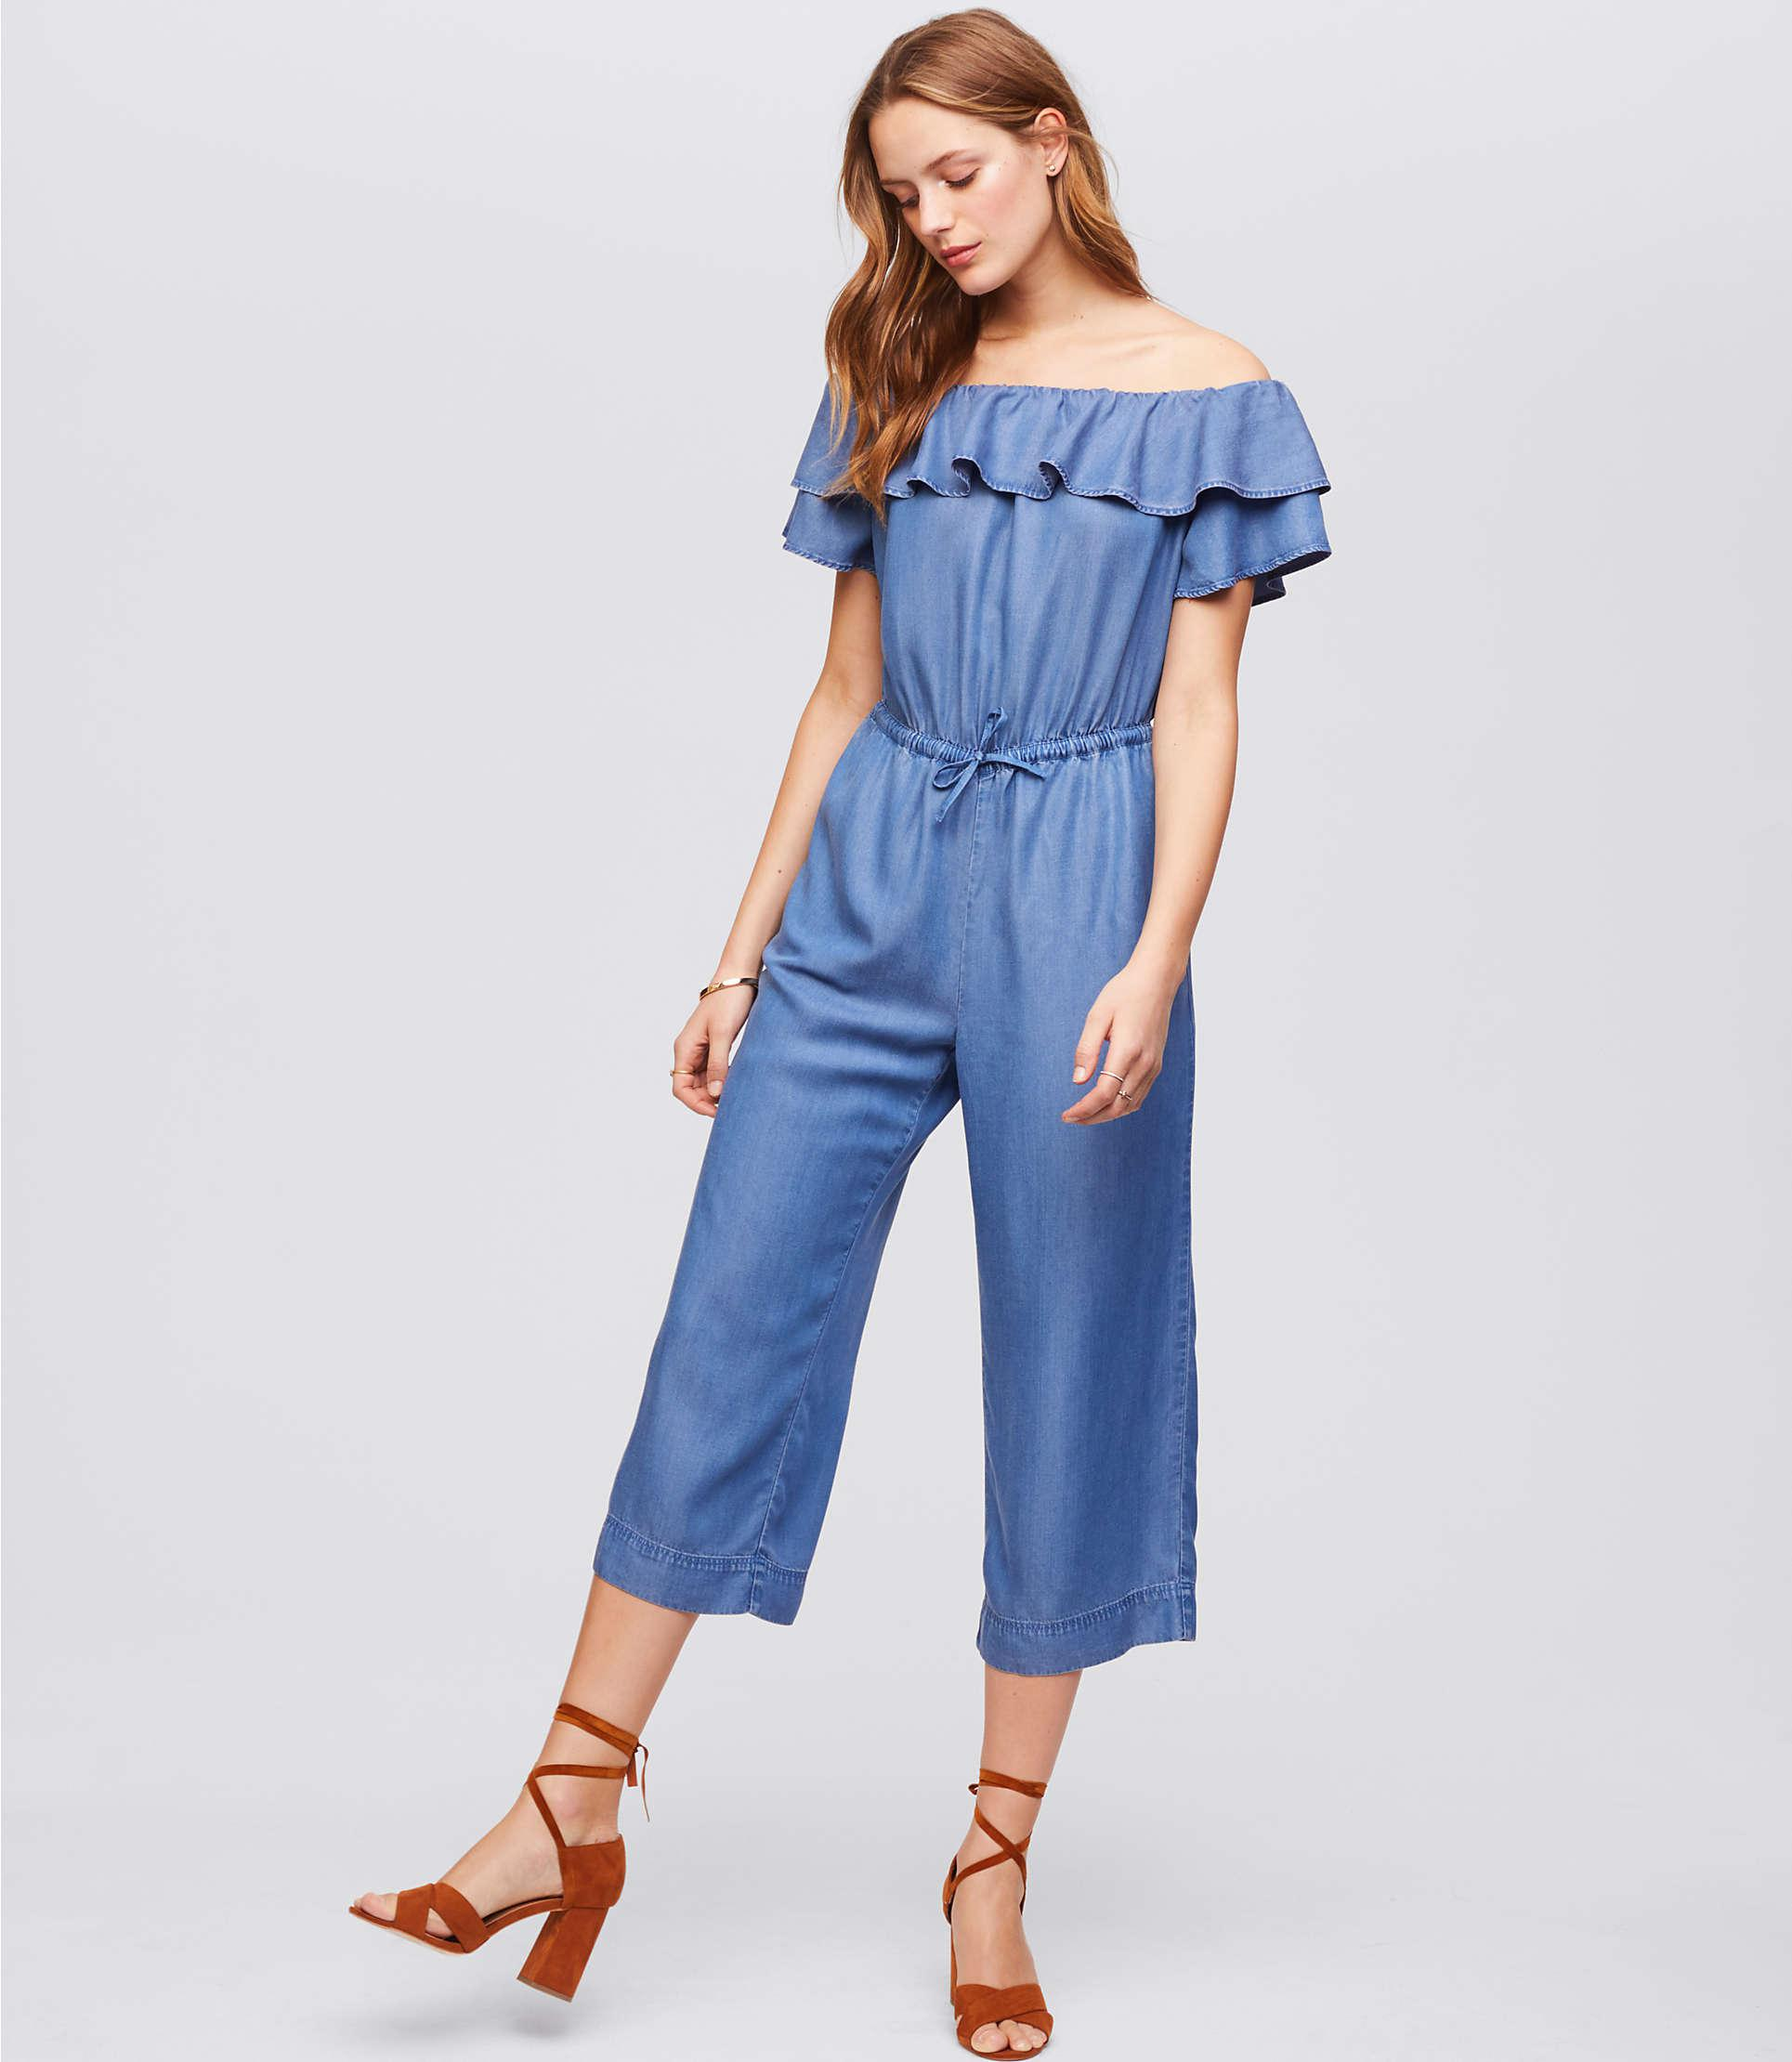 cddf4b95d3c2 Lyst - LOFT Petite Off The Shoulder Chambray Jumpsuit in Blue